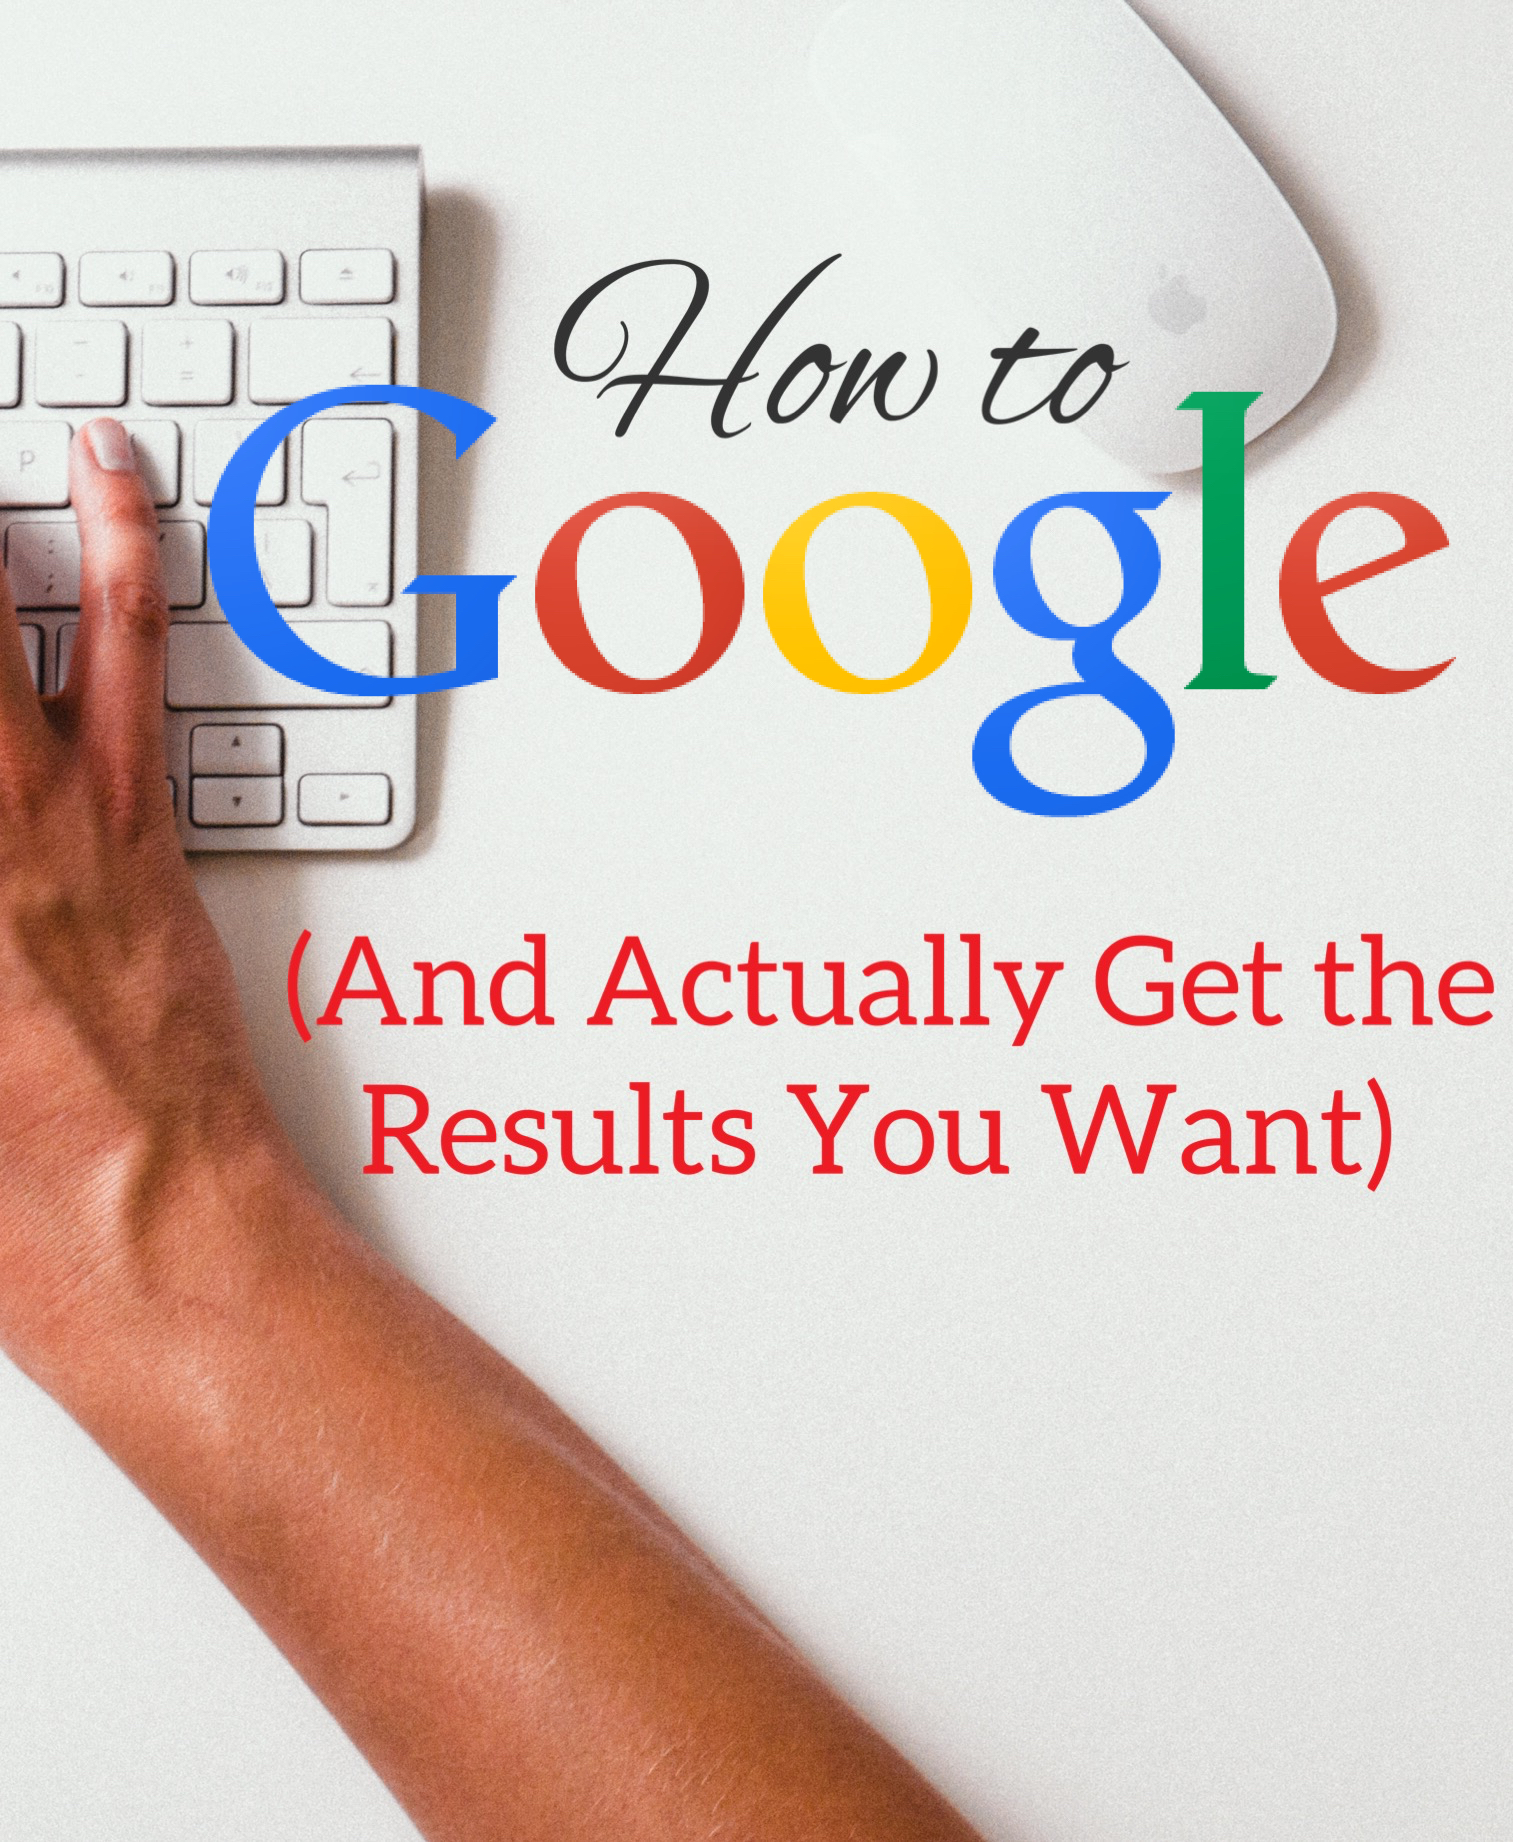 How To Google (And Actually Get the Results You Want)